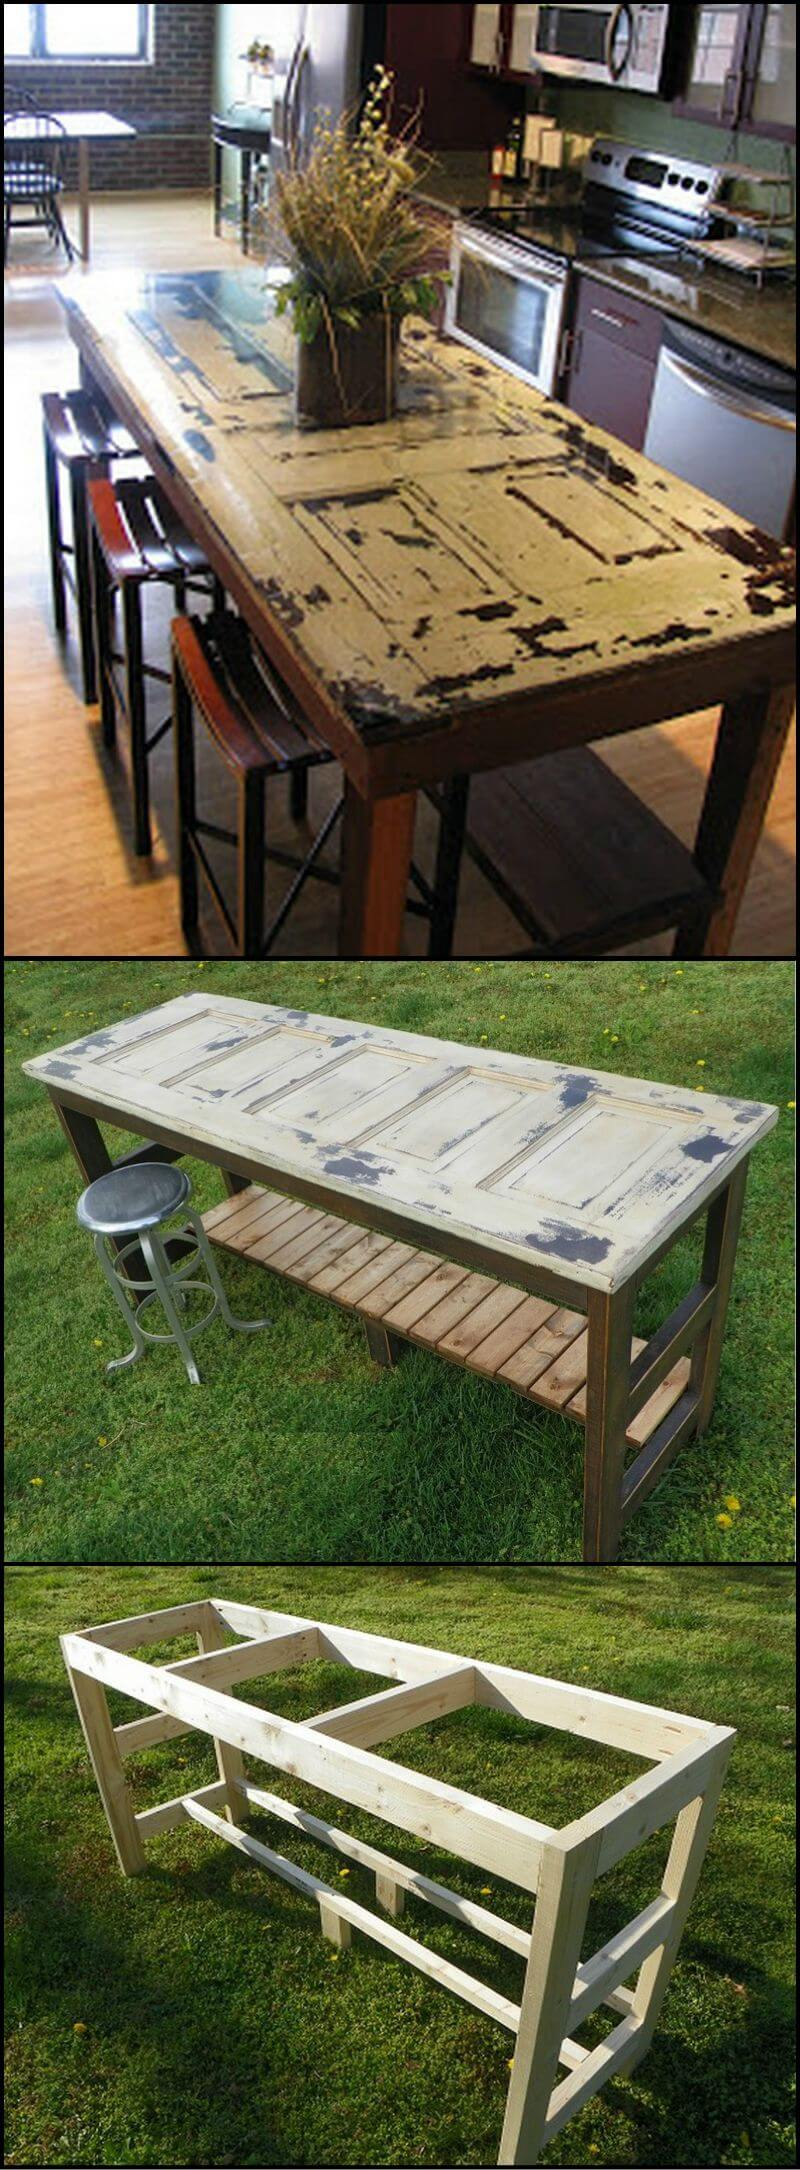 Upcycled Door Doubles as Eating and Workspace